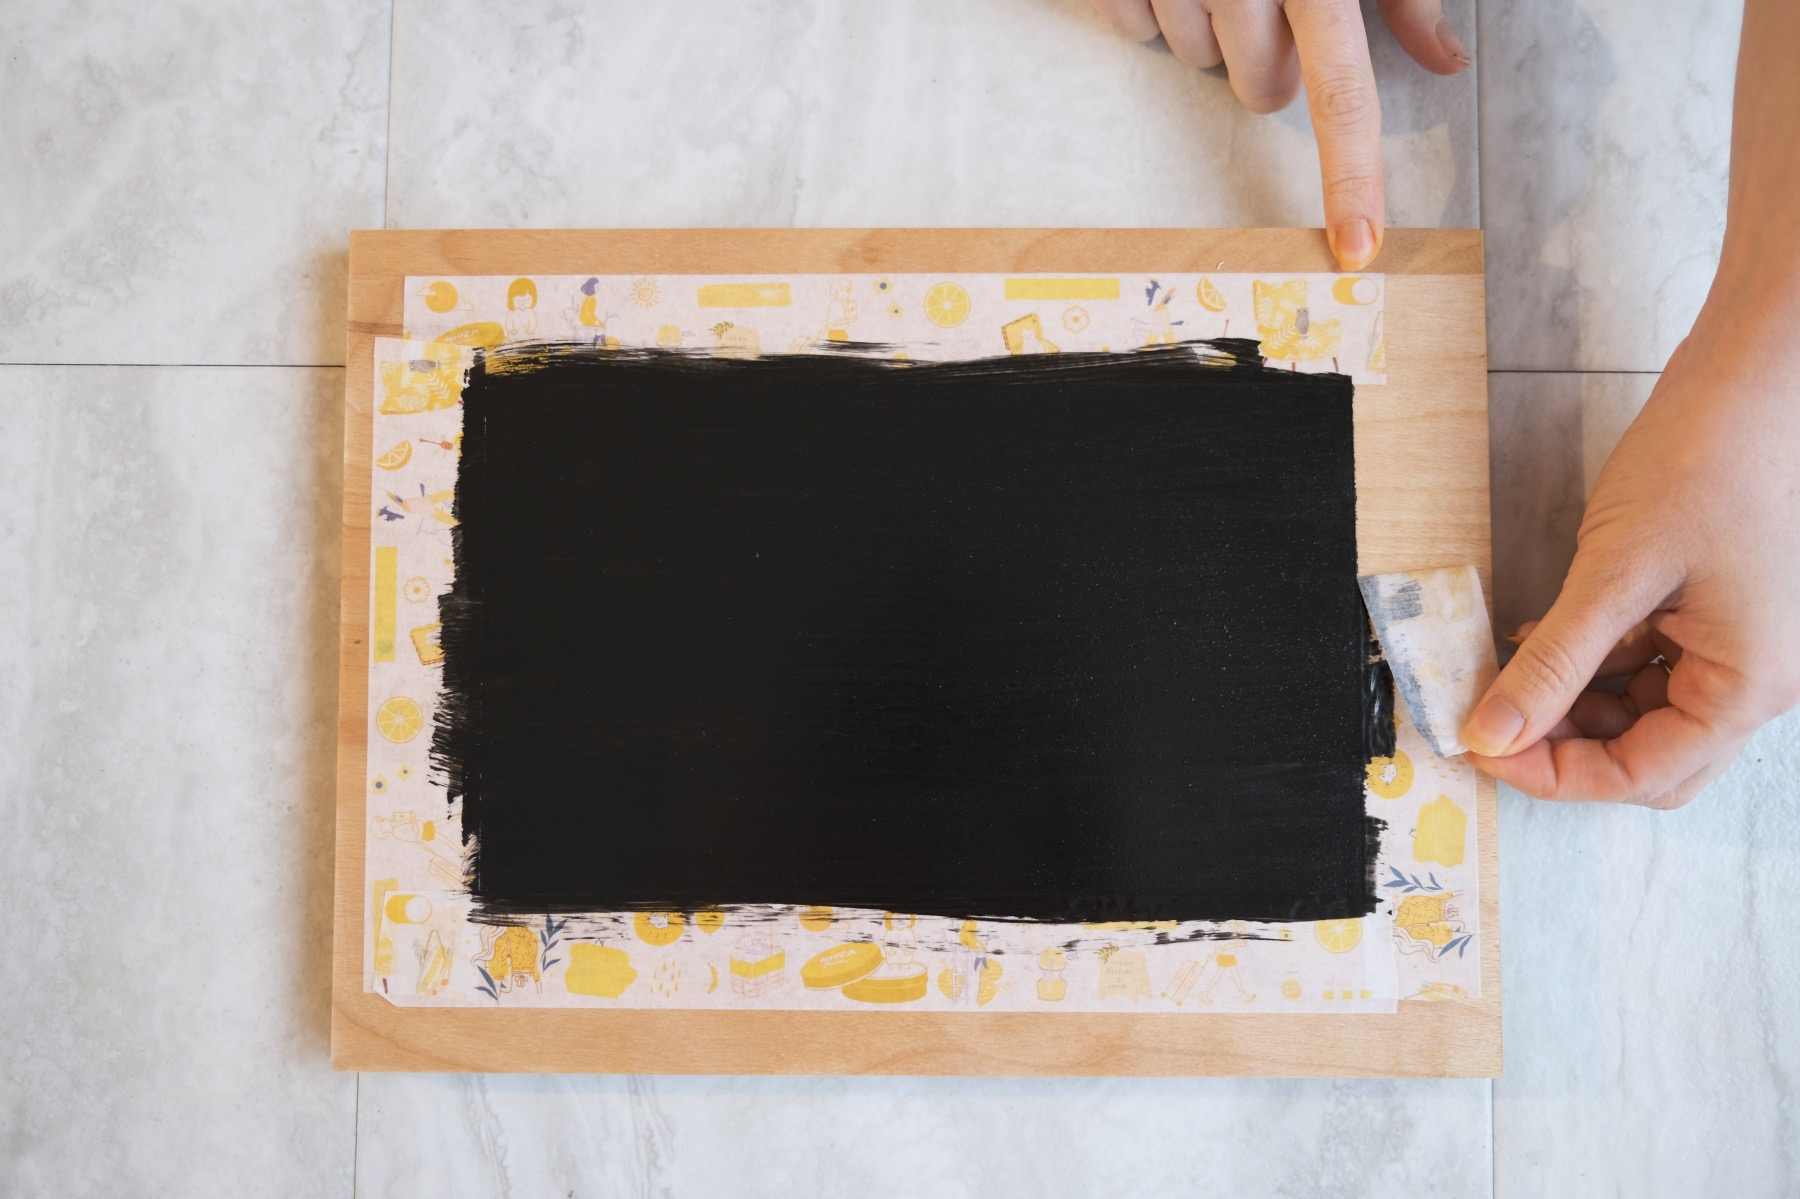 remove the washi tape to reveal the chalkboard